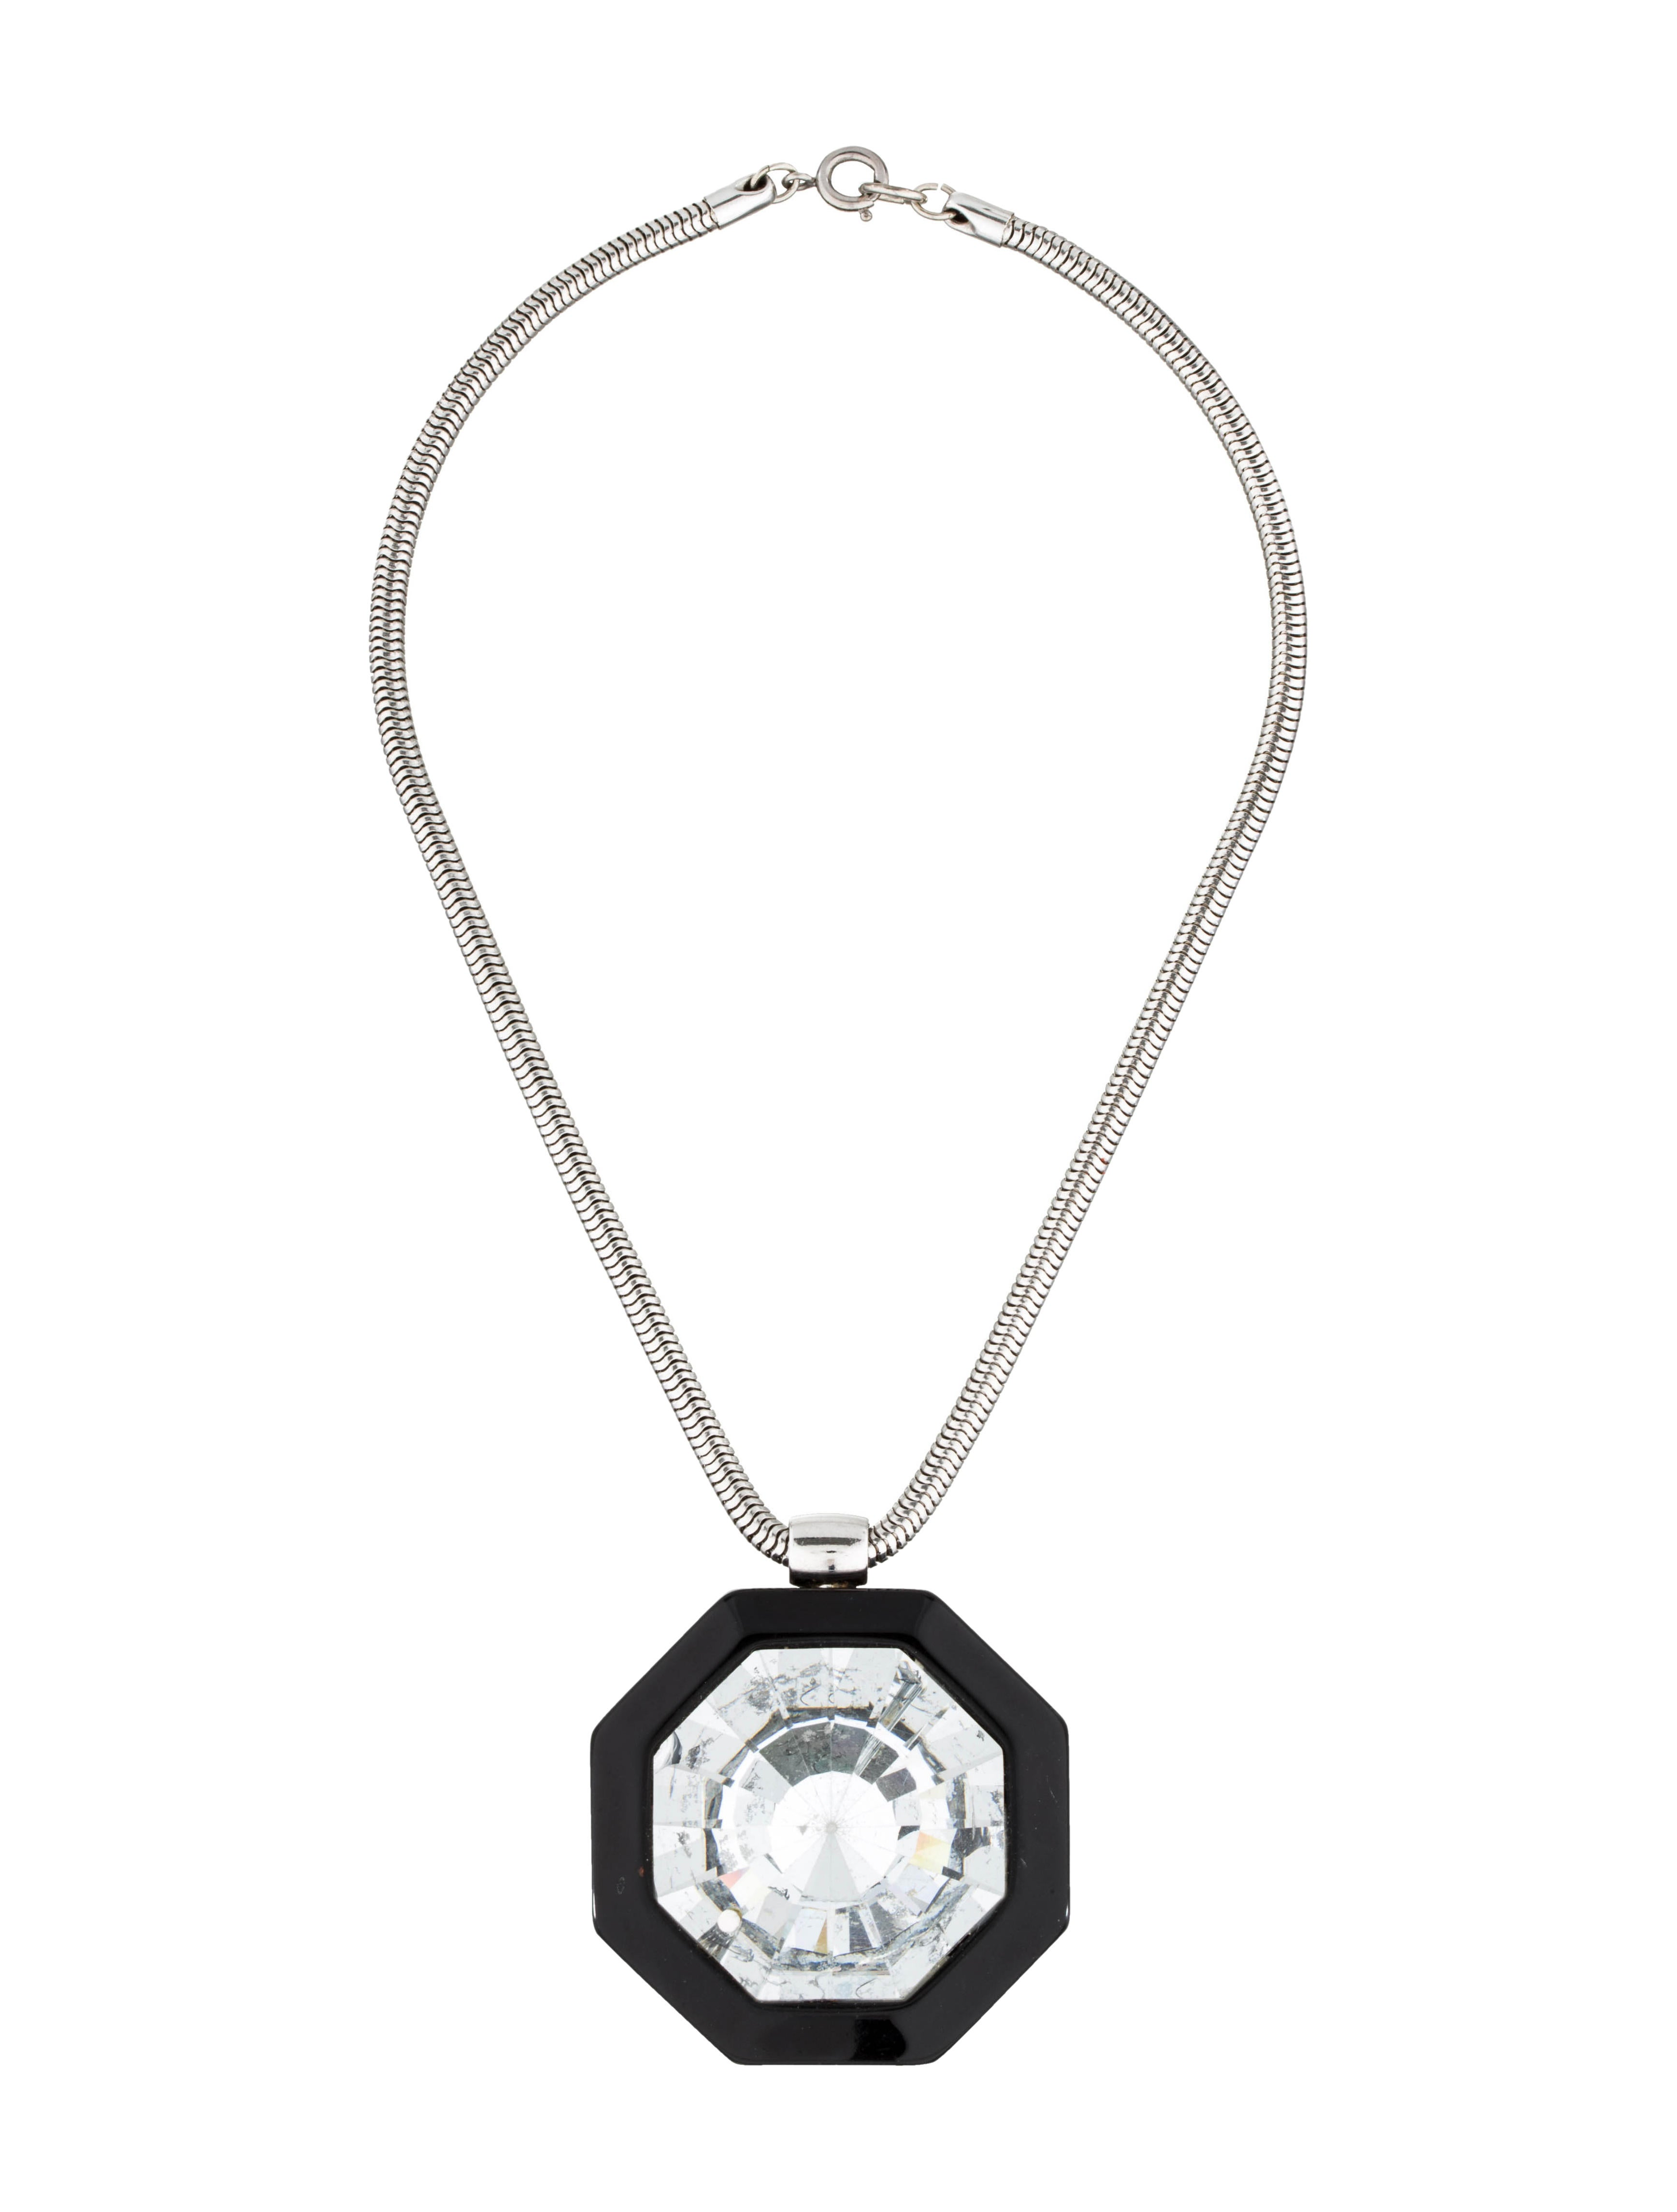 Find great deals on eBay for large crystal necklace. Shop with confidence.